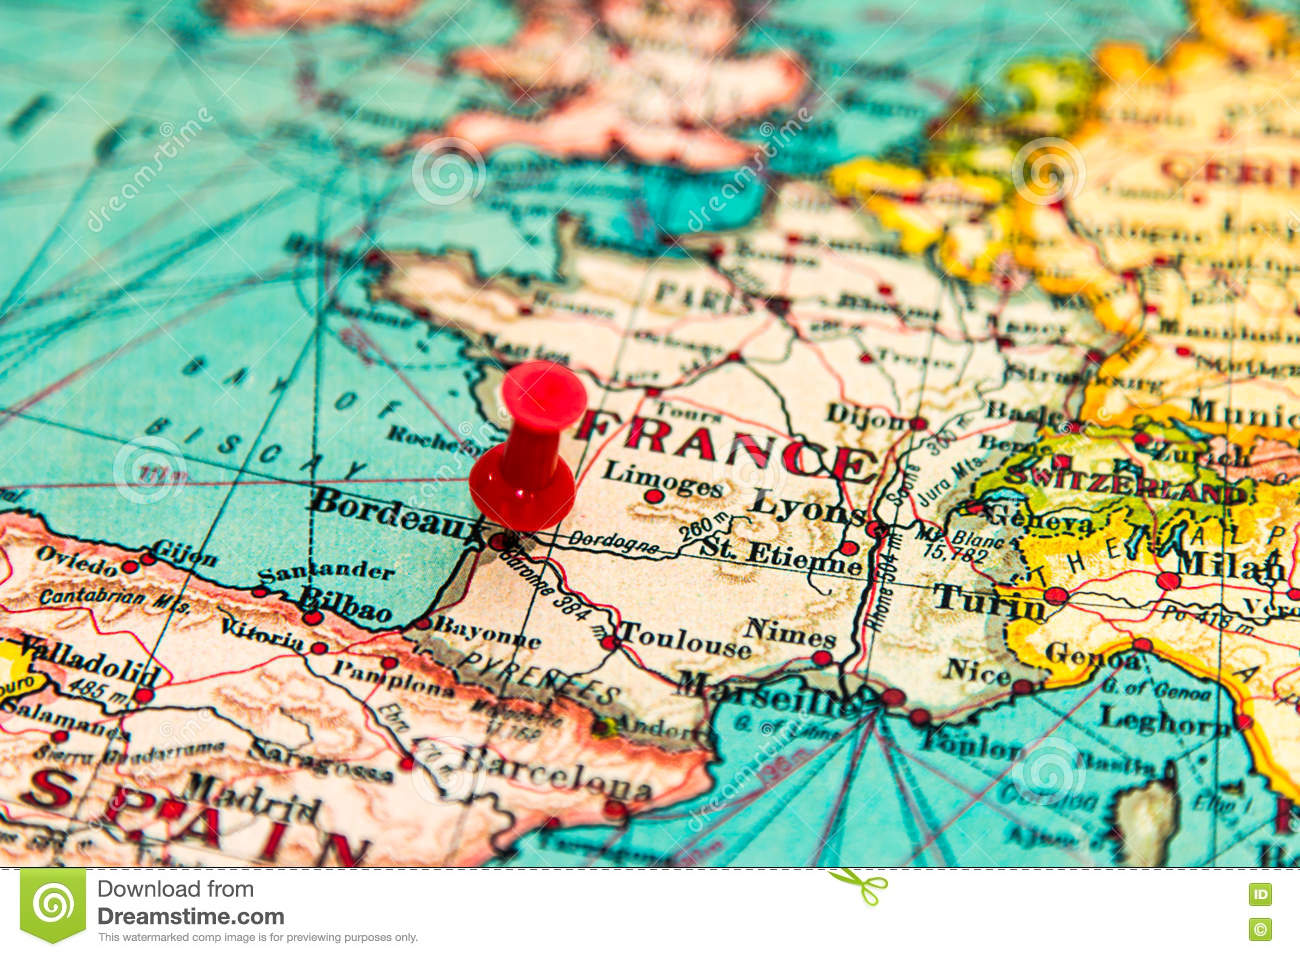 Bordeaux Map Of France.Bordeaux France Pinned On Vintage Map Of Europe Stock Photo Image